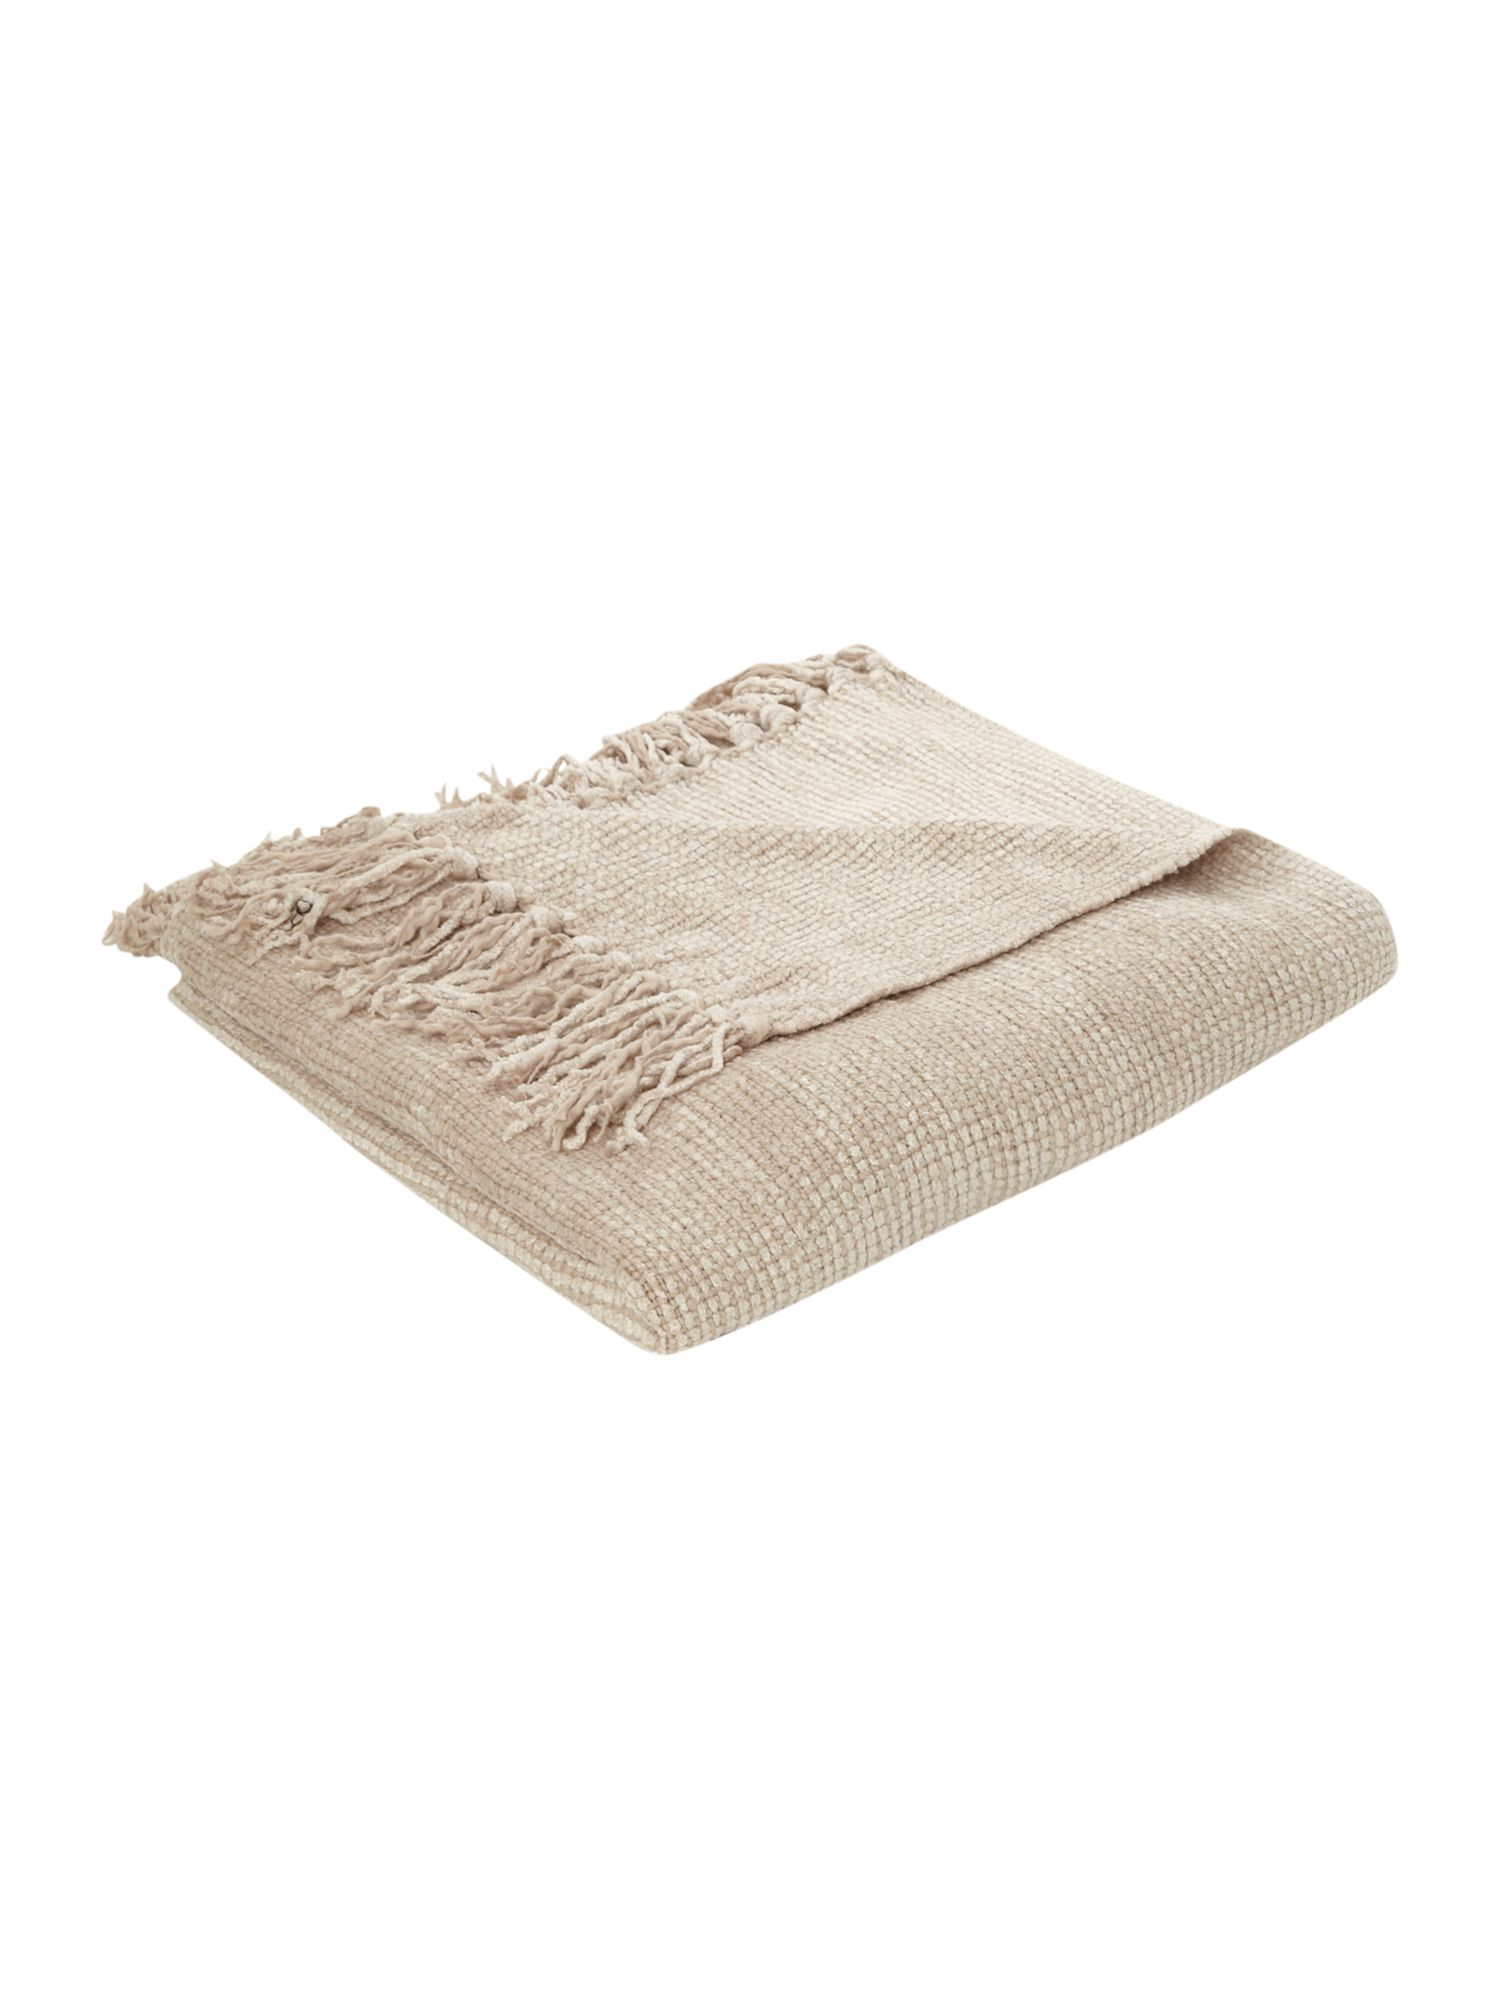 Natural chenille throw